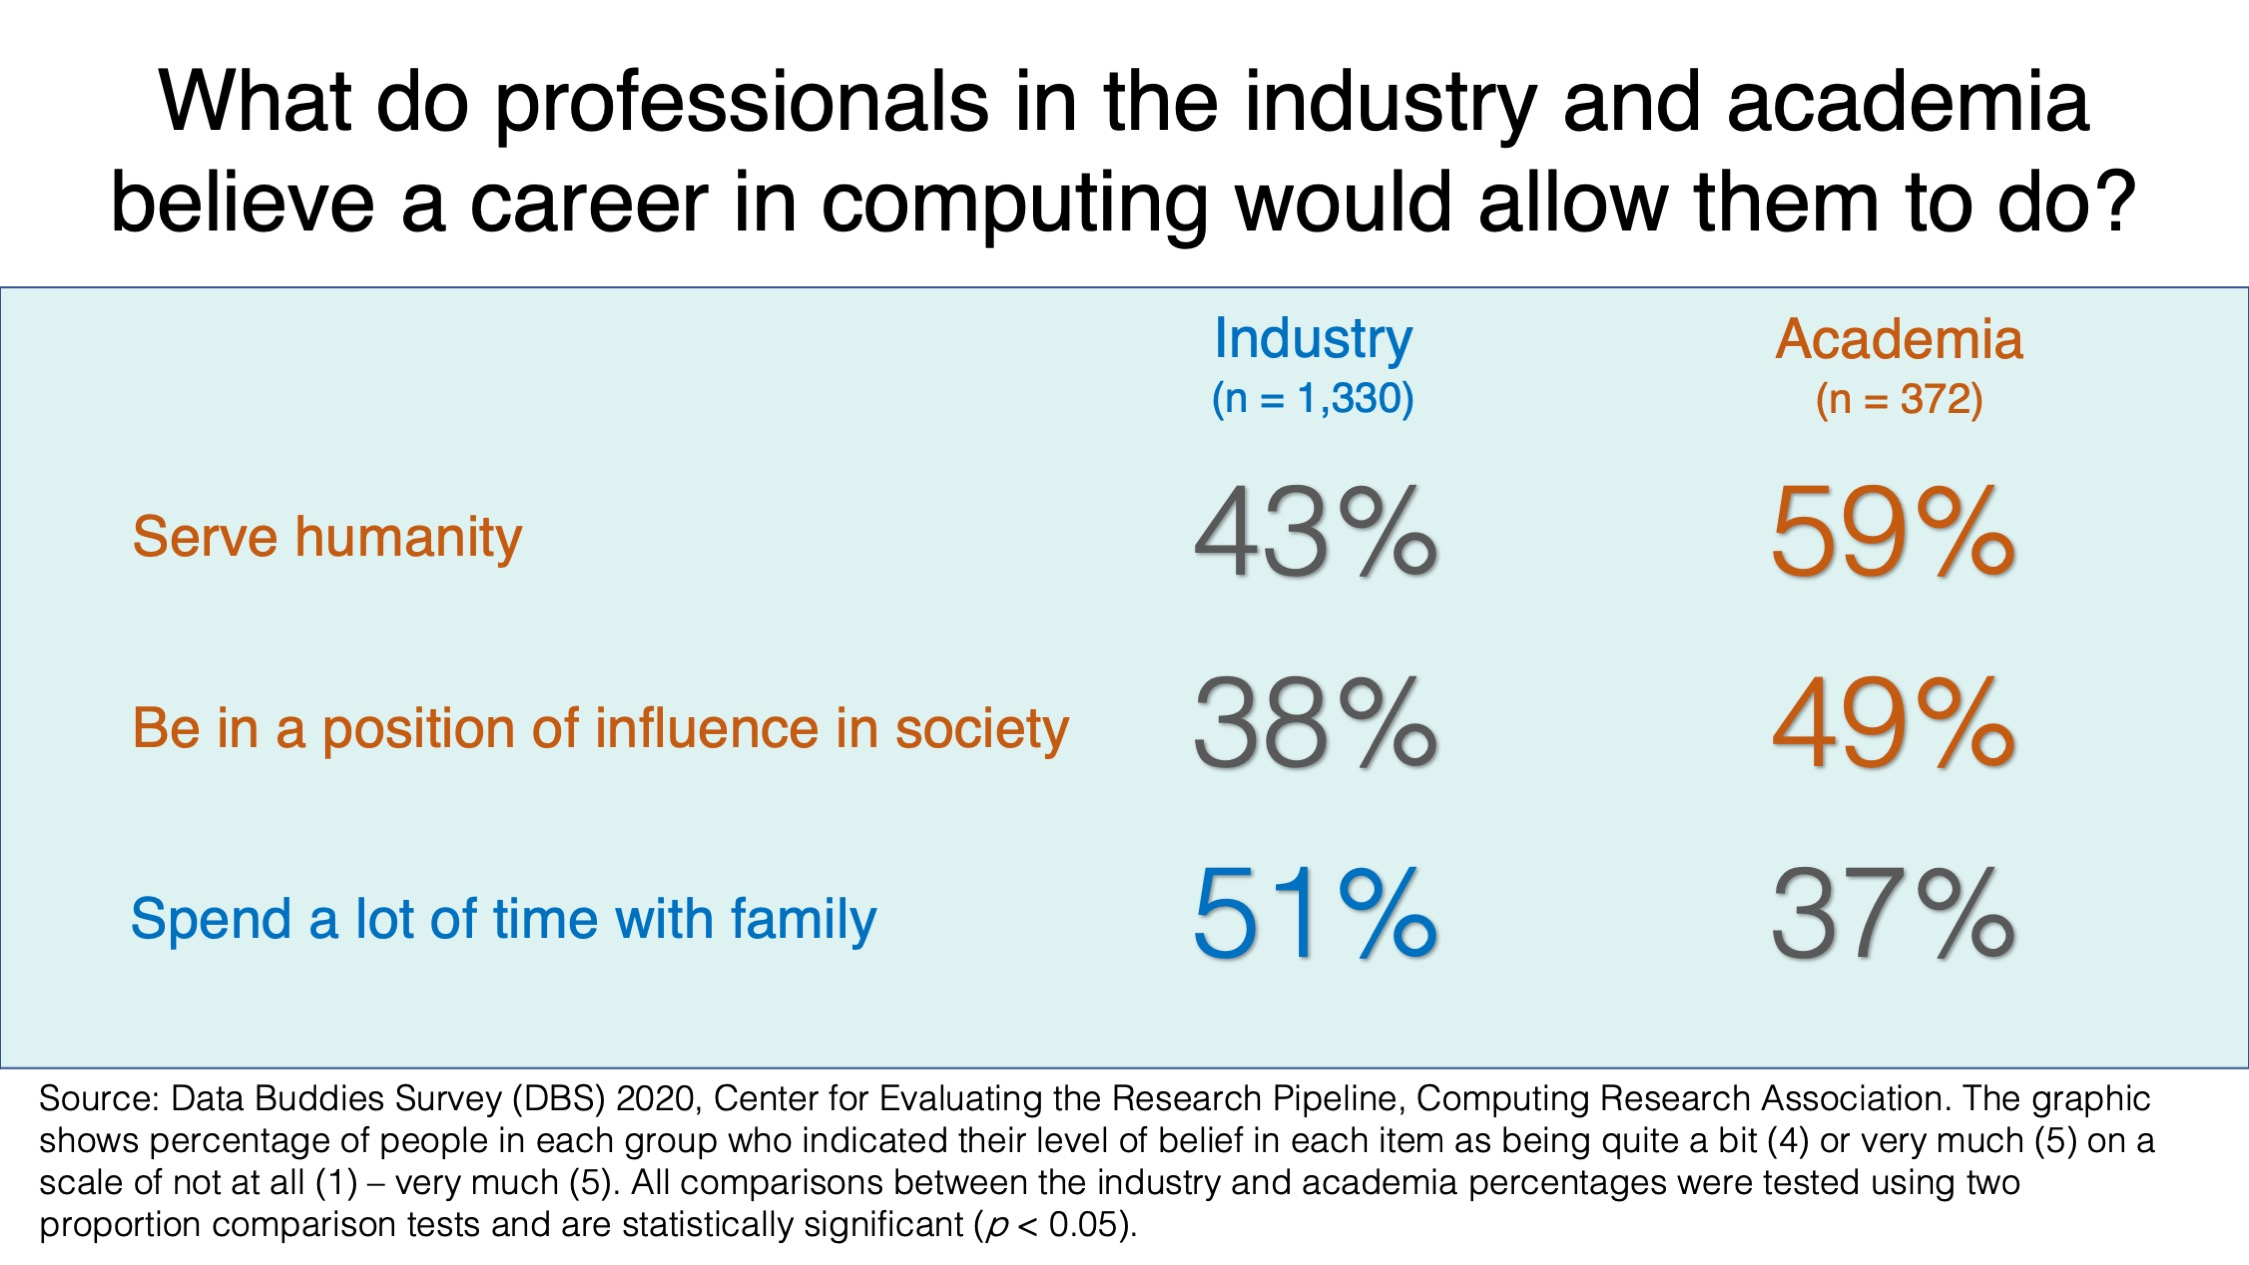 Percentages shown in tabular format for industry and academia professionals in separate columns